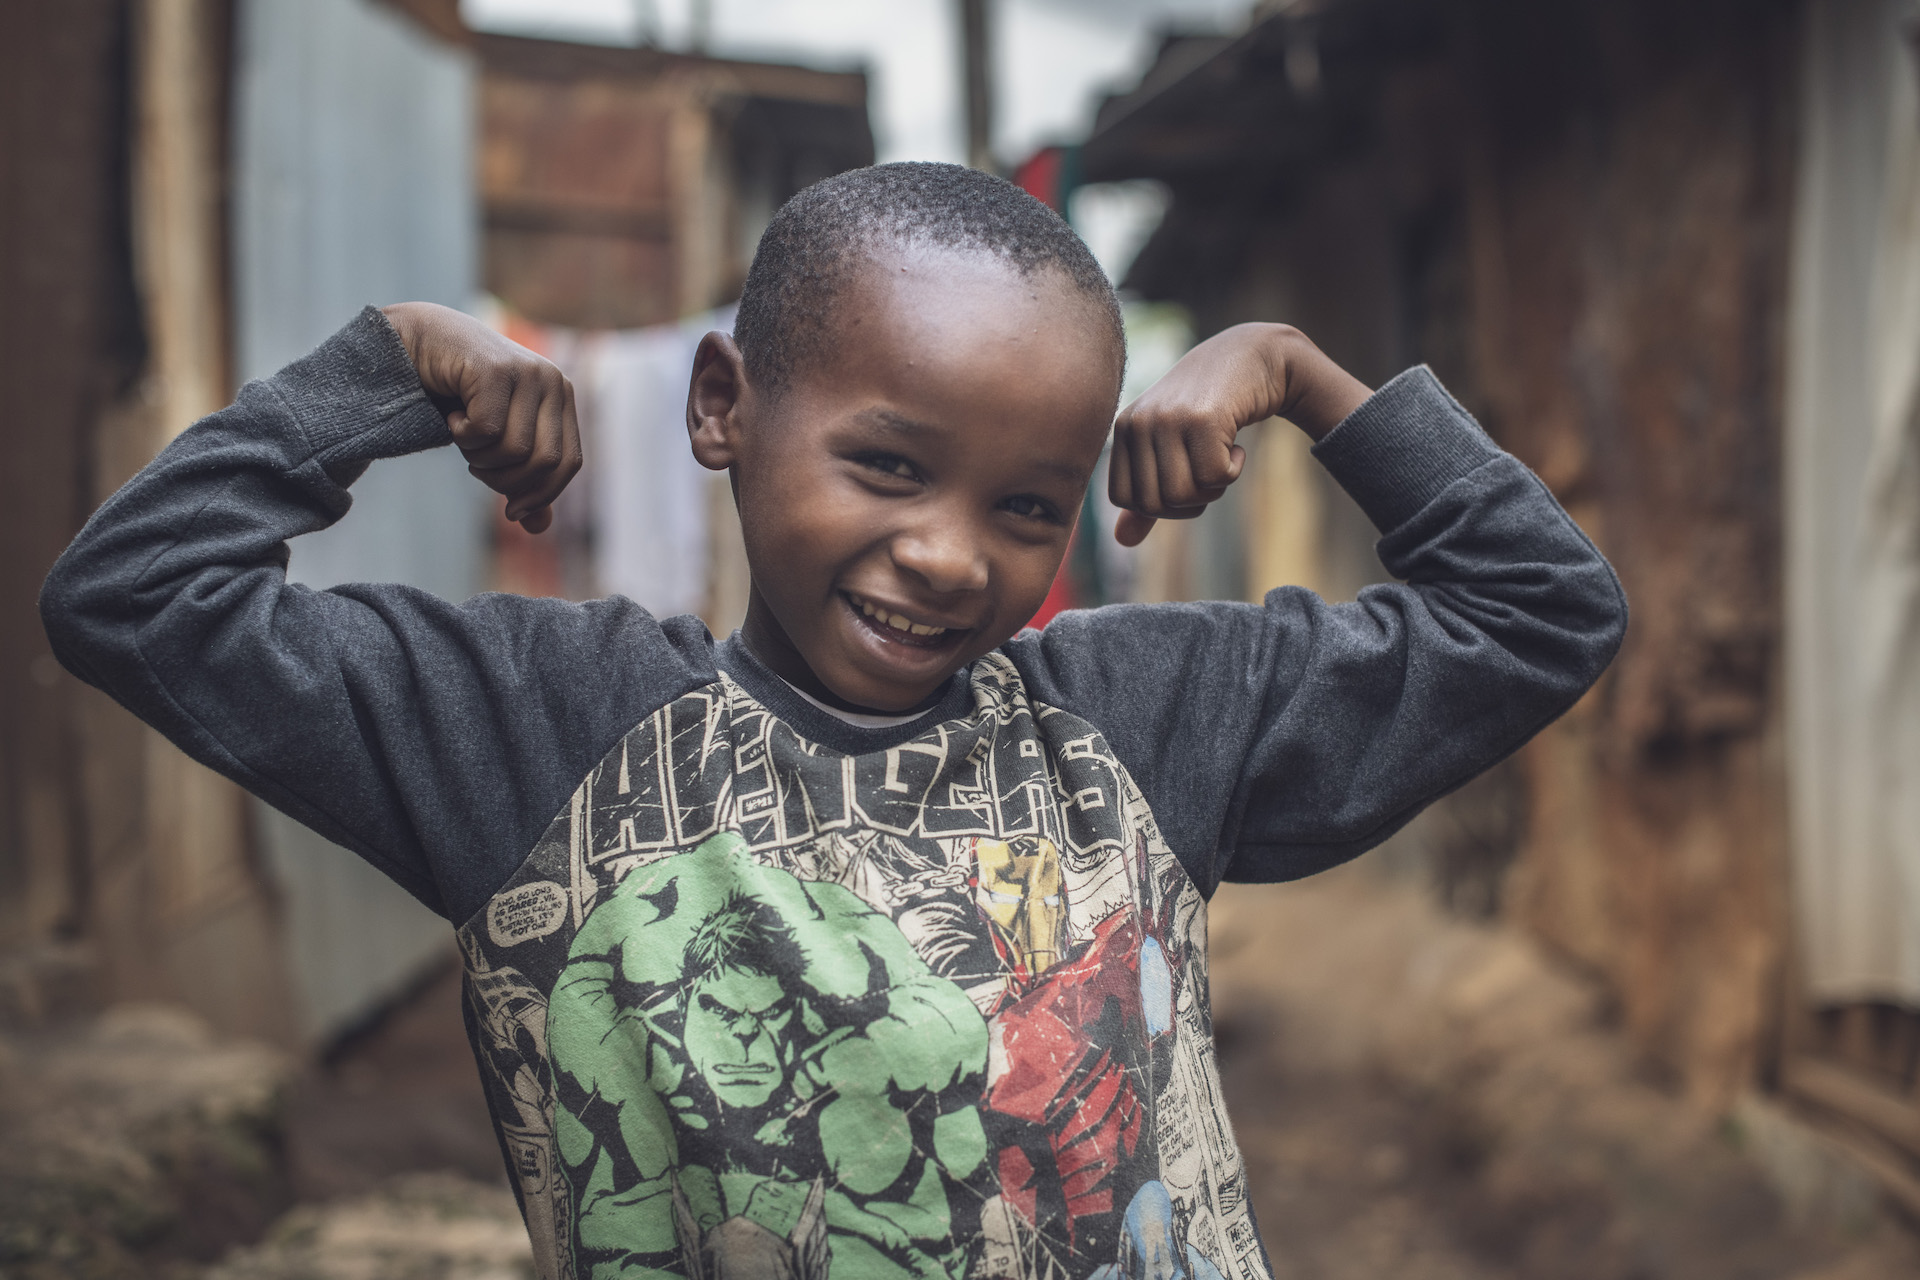 A boy stands flexing his arms.